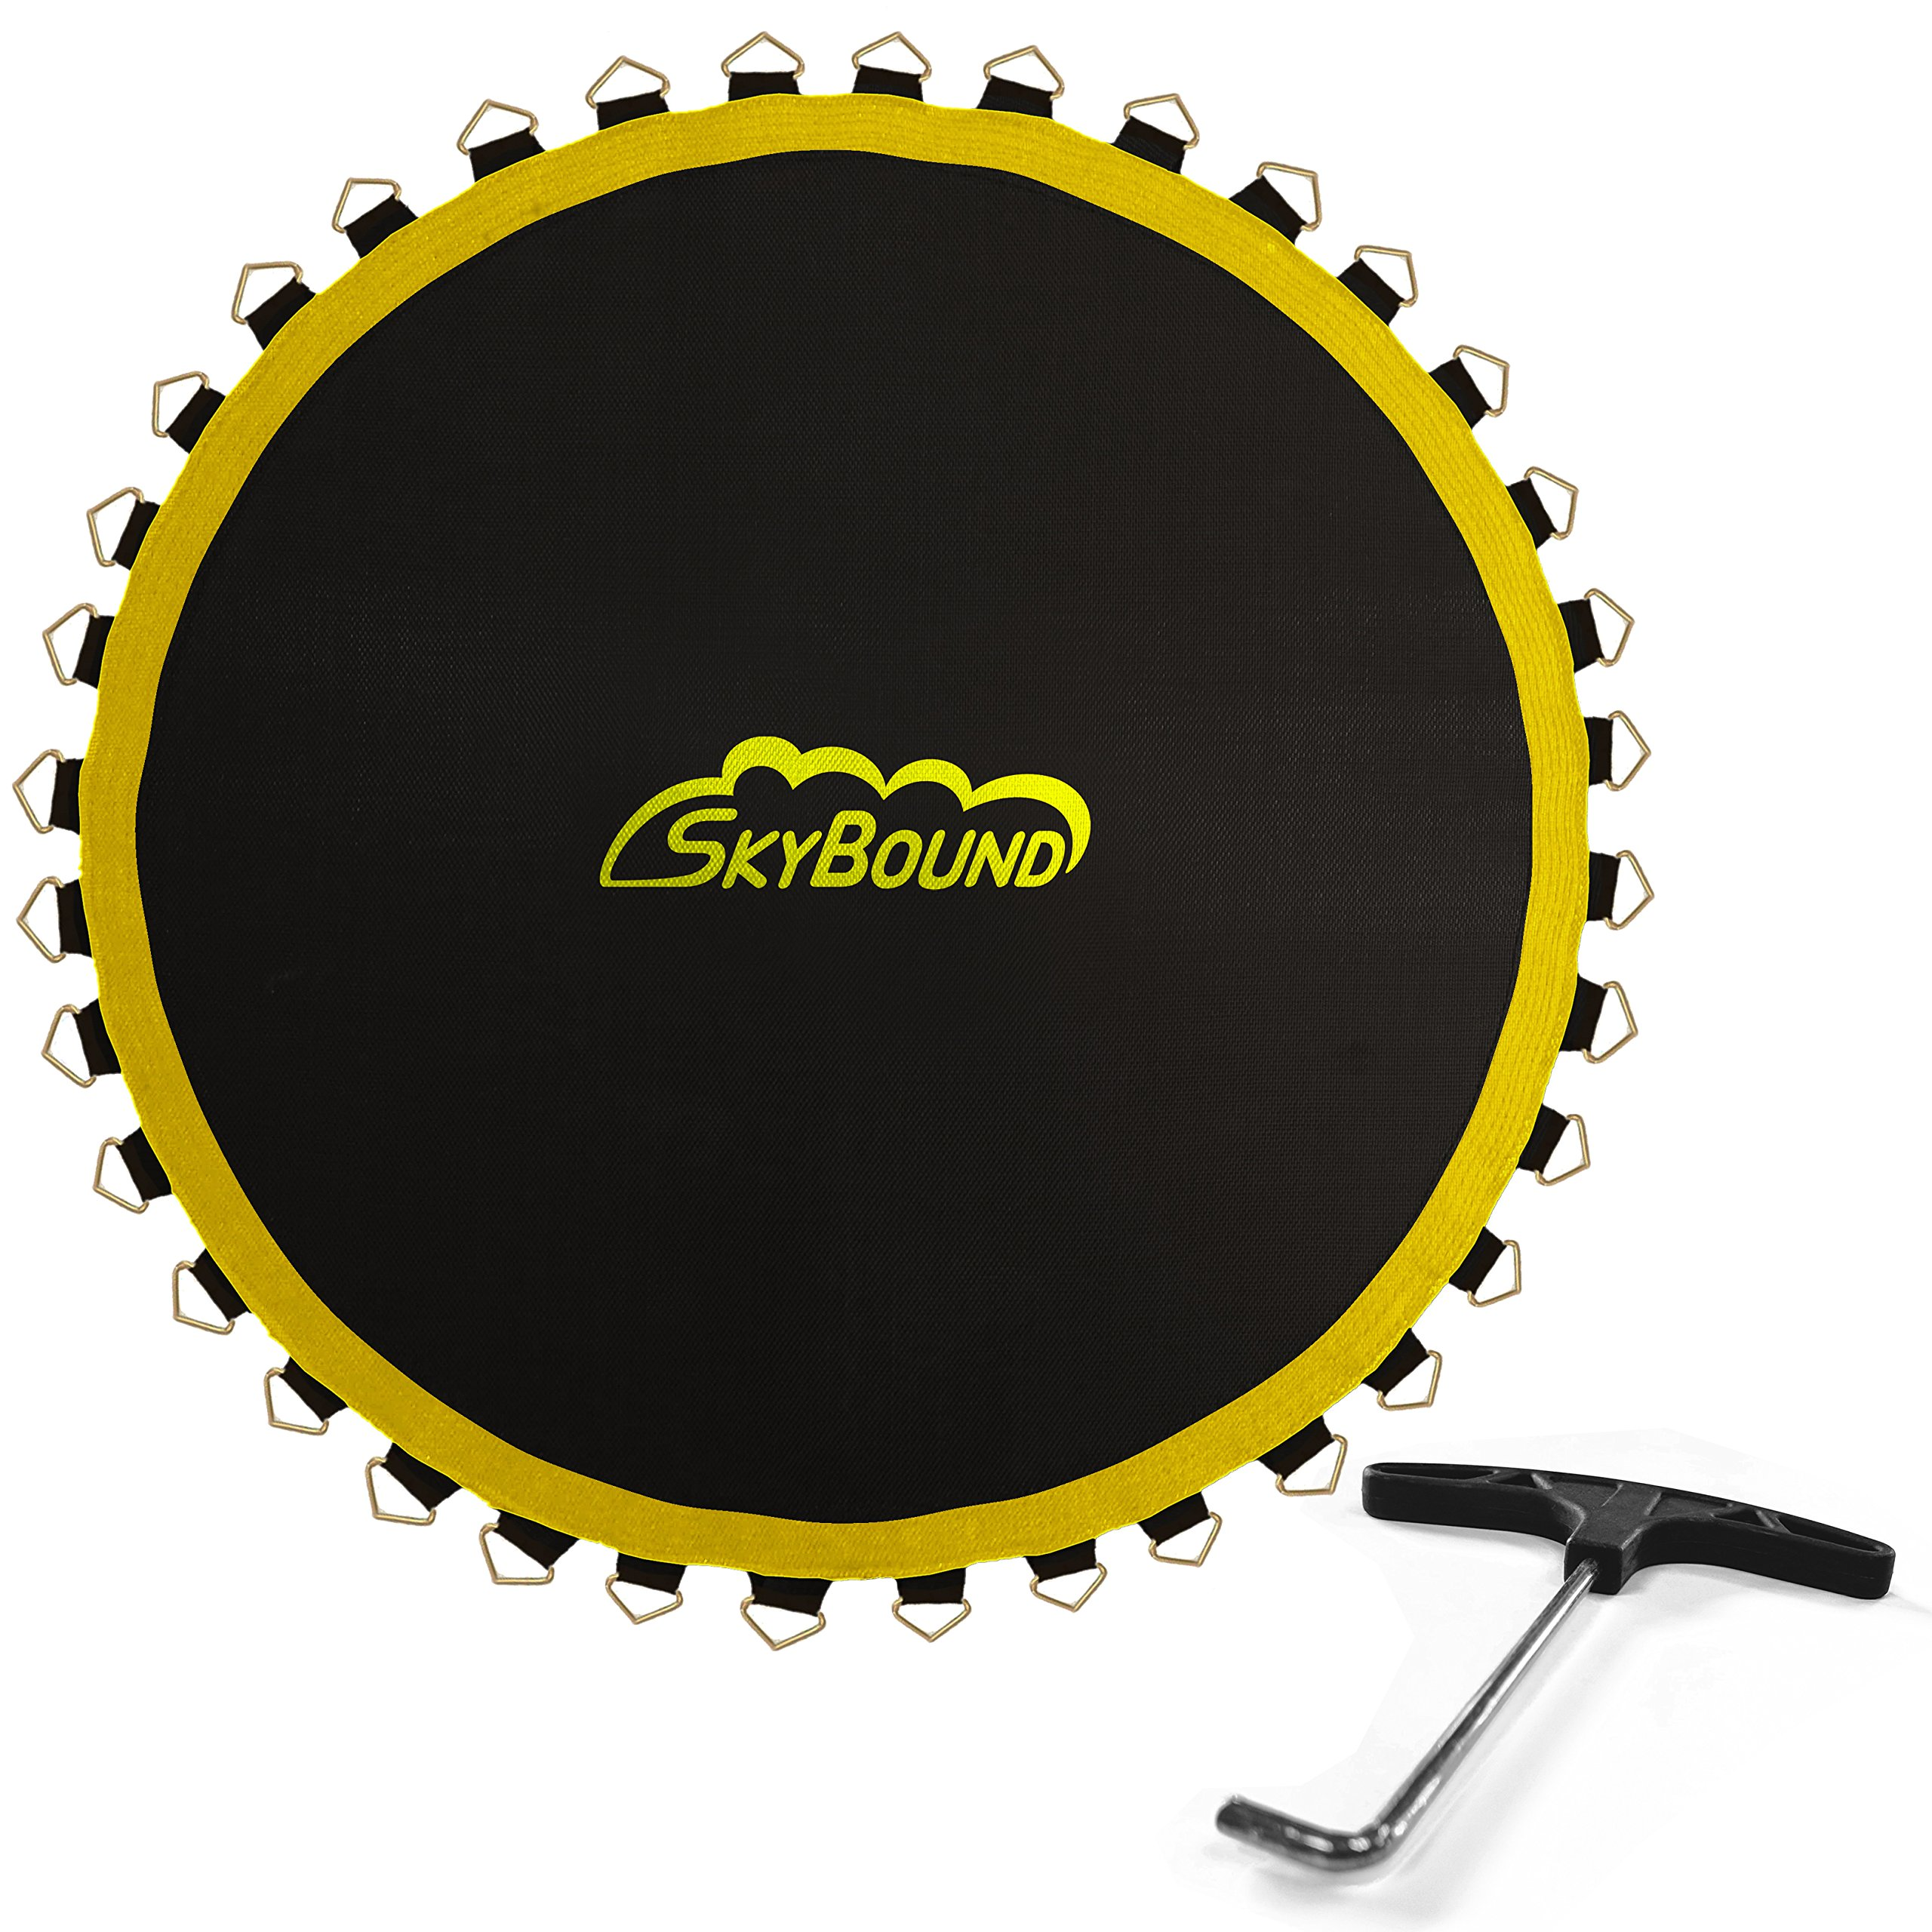 SkyBound 12 ft. 6 in. (150 in.) Sunguard Premium Round Trampoline Mat with 72 V-Rings, Fits Frames That are 14 ft., That use Springs That are 5.5''. (Fits Brands Bounce Pro, Sports Power)